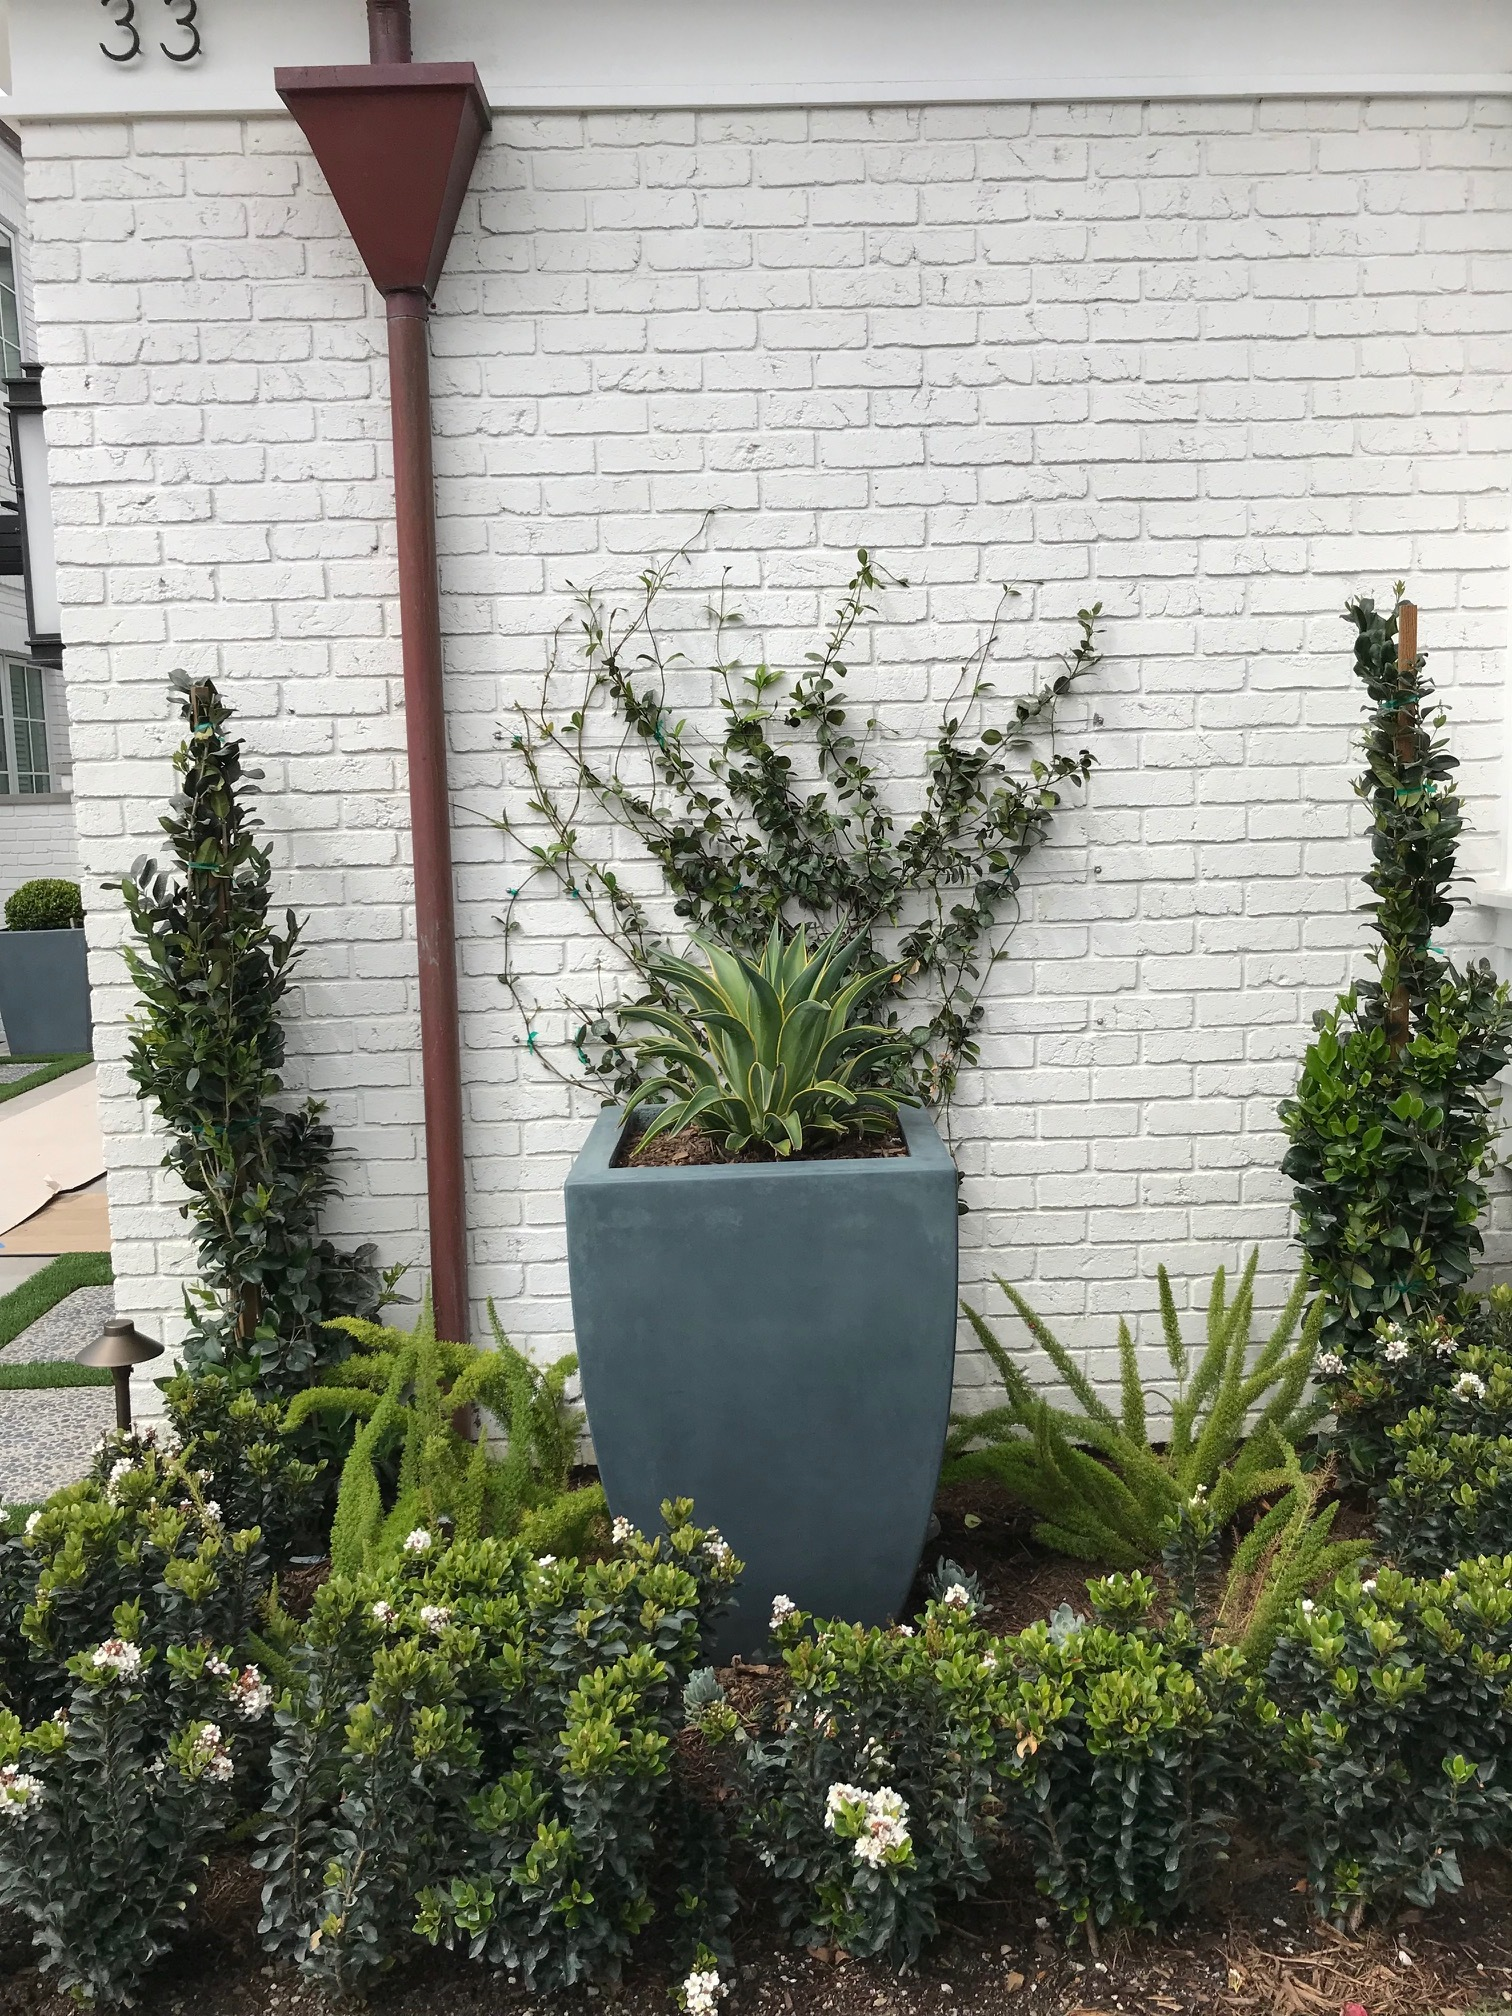 Plantings upgrading the look of the white construction in Dana Point